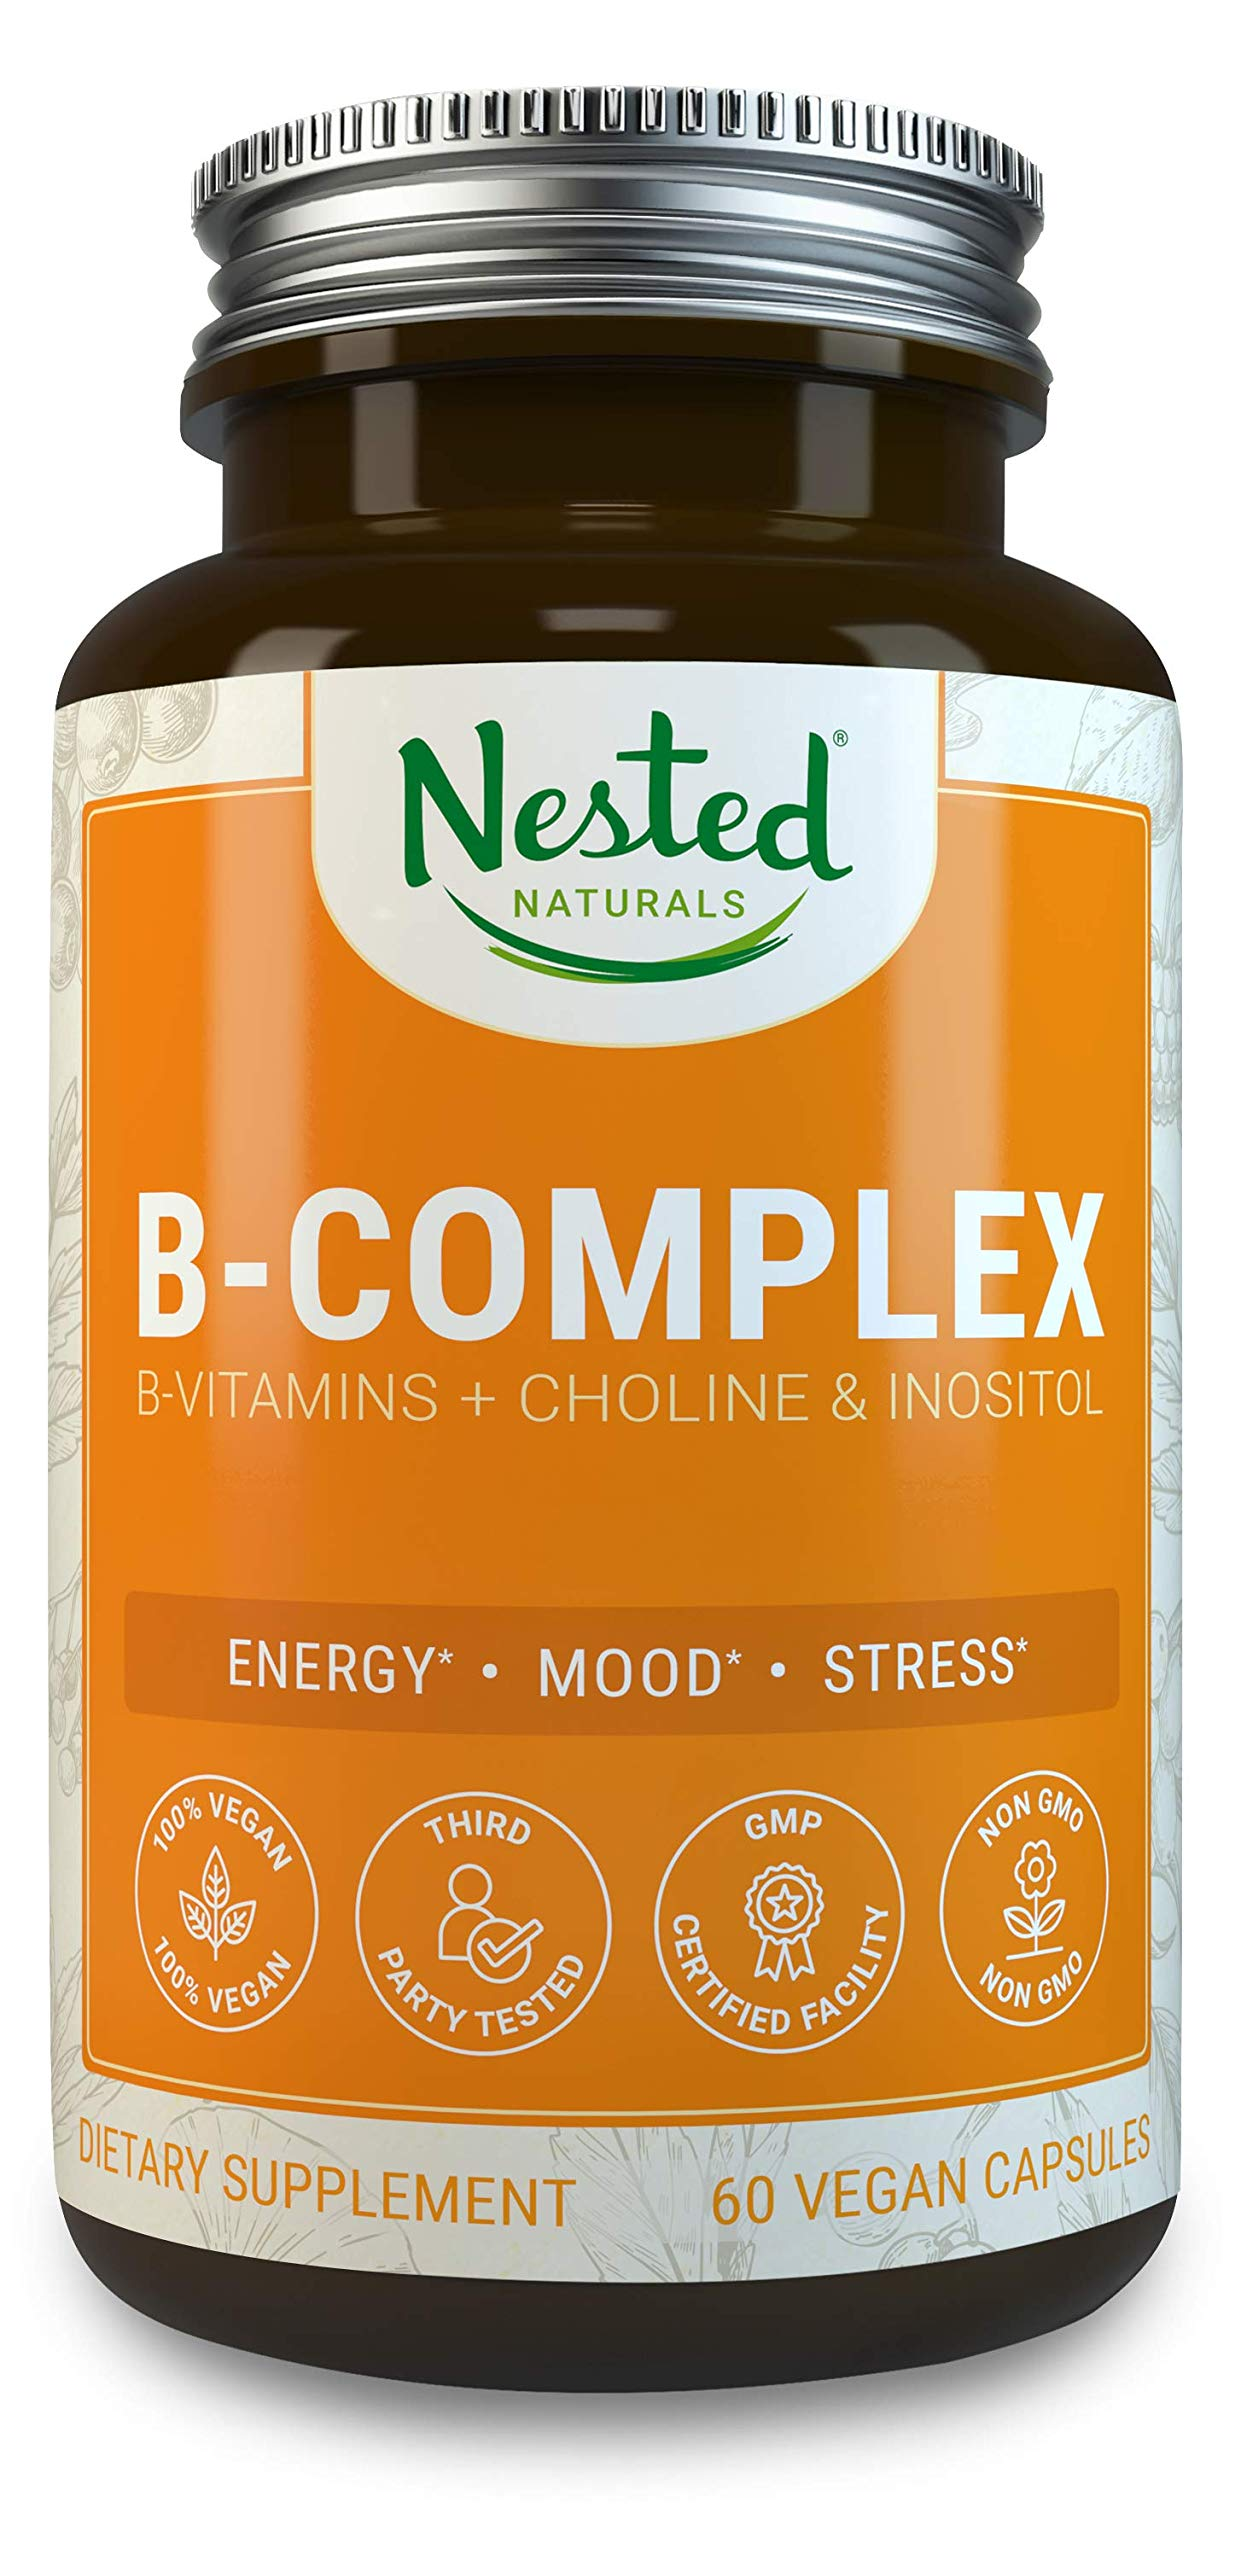 All 8 B-Complex Vitamins Plus Choline & Inositol | 60 Vegan Capsules | High Potency Multi B Vitamin with Pure Methyl B12 | Best B-Vitamins Complex Supplement for Men & Women